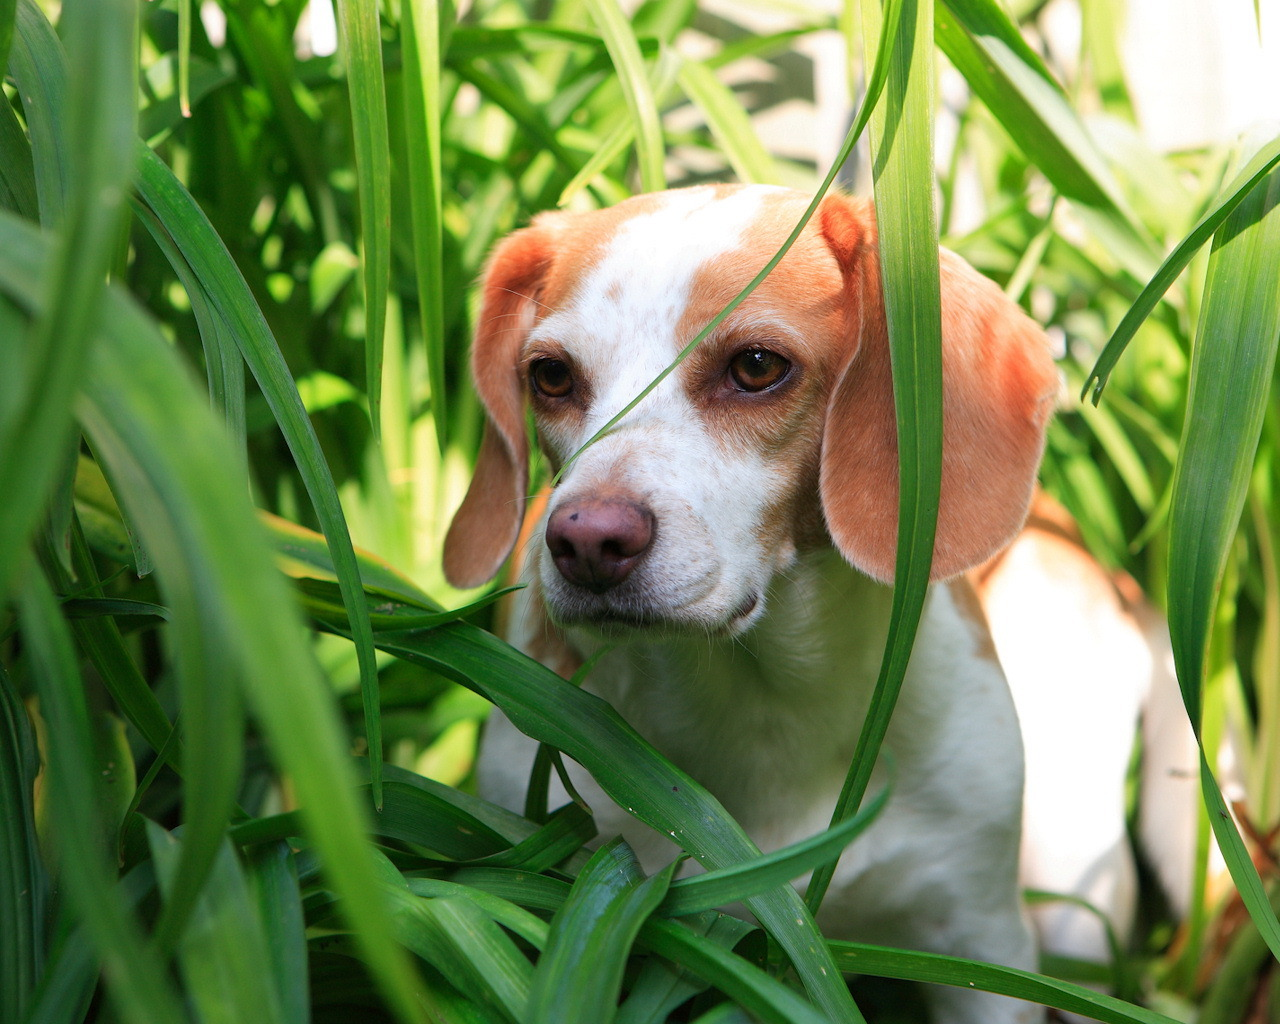 Beagle in the grass